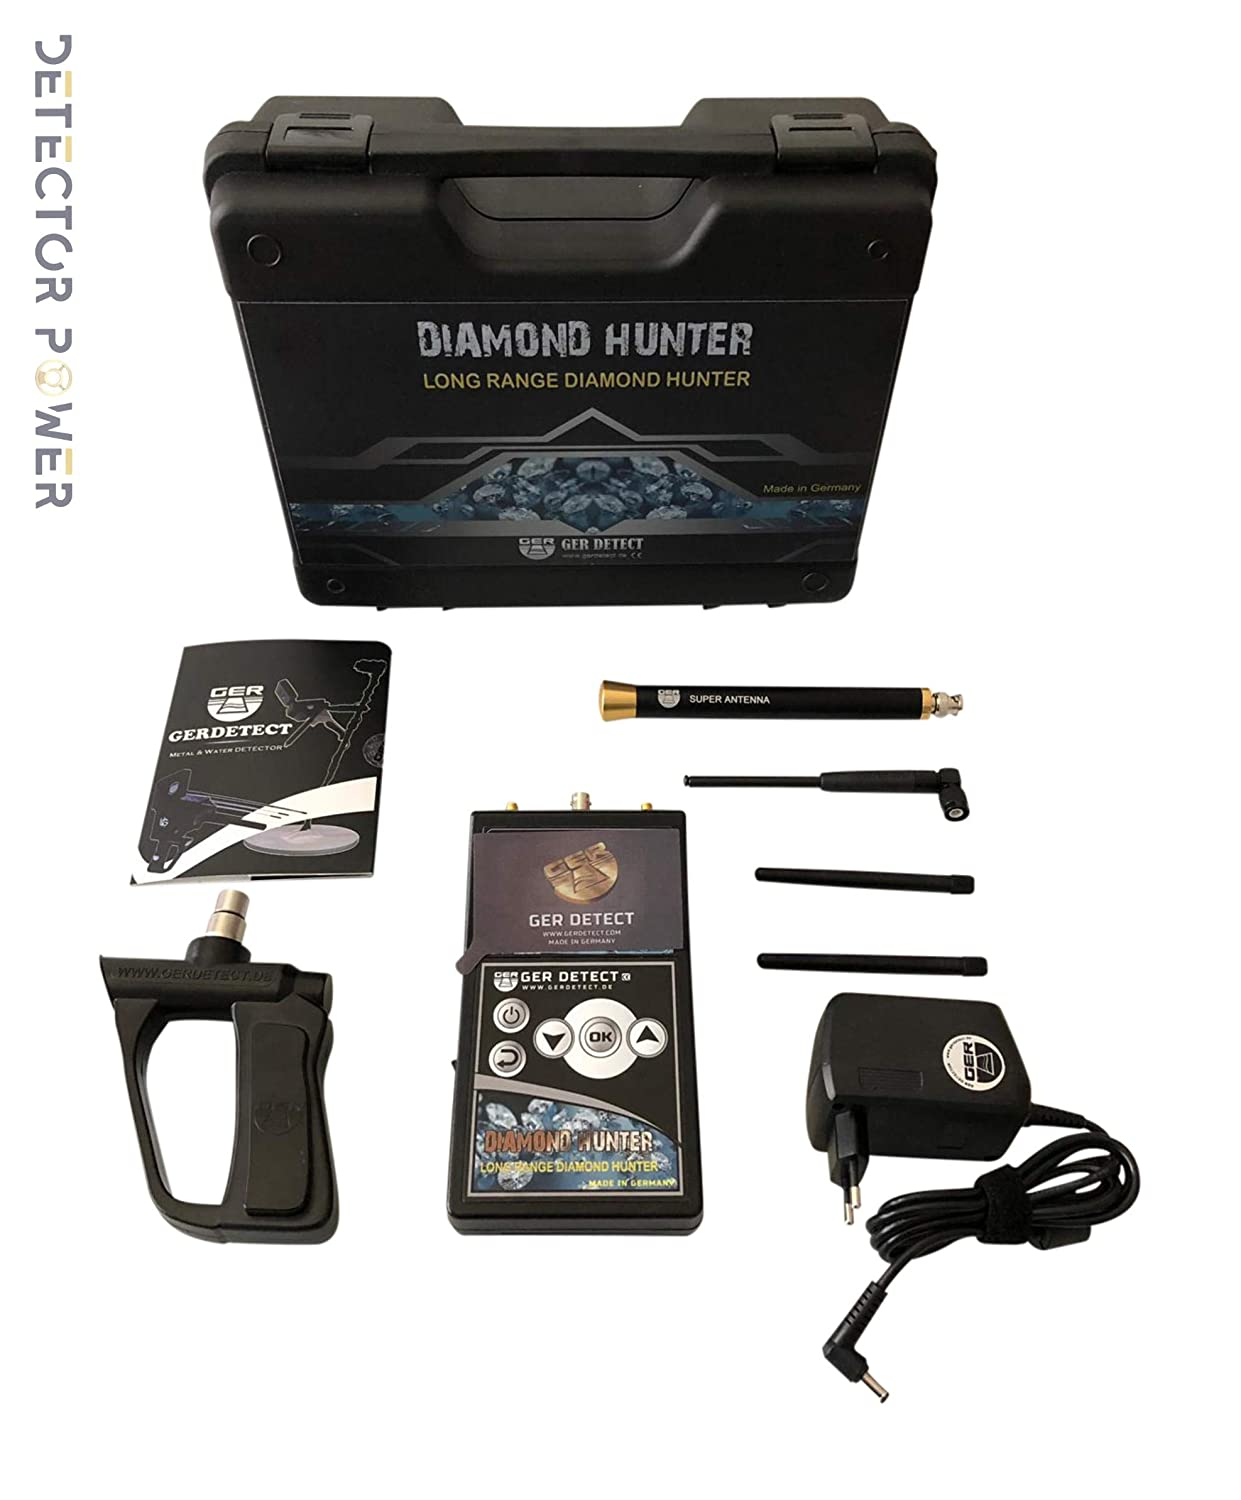 Amazon.com: GER DETECT Detector de diamante cazador de largo ...